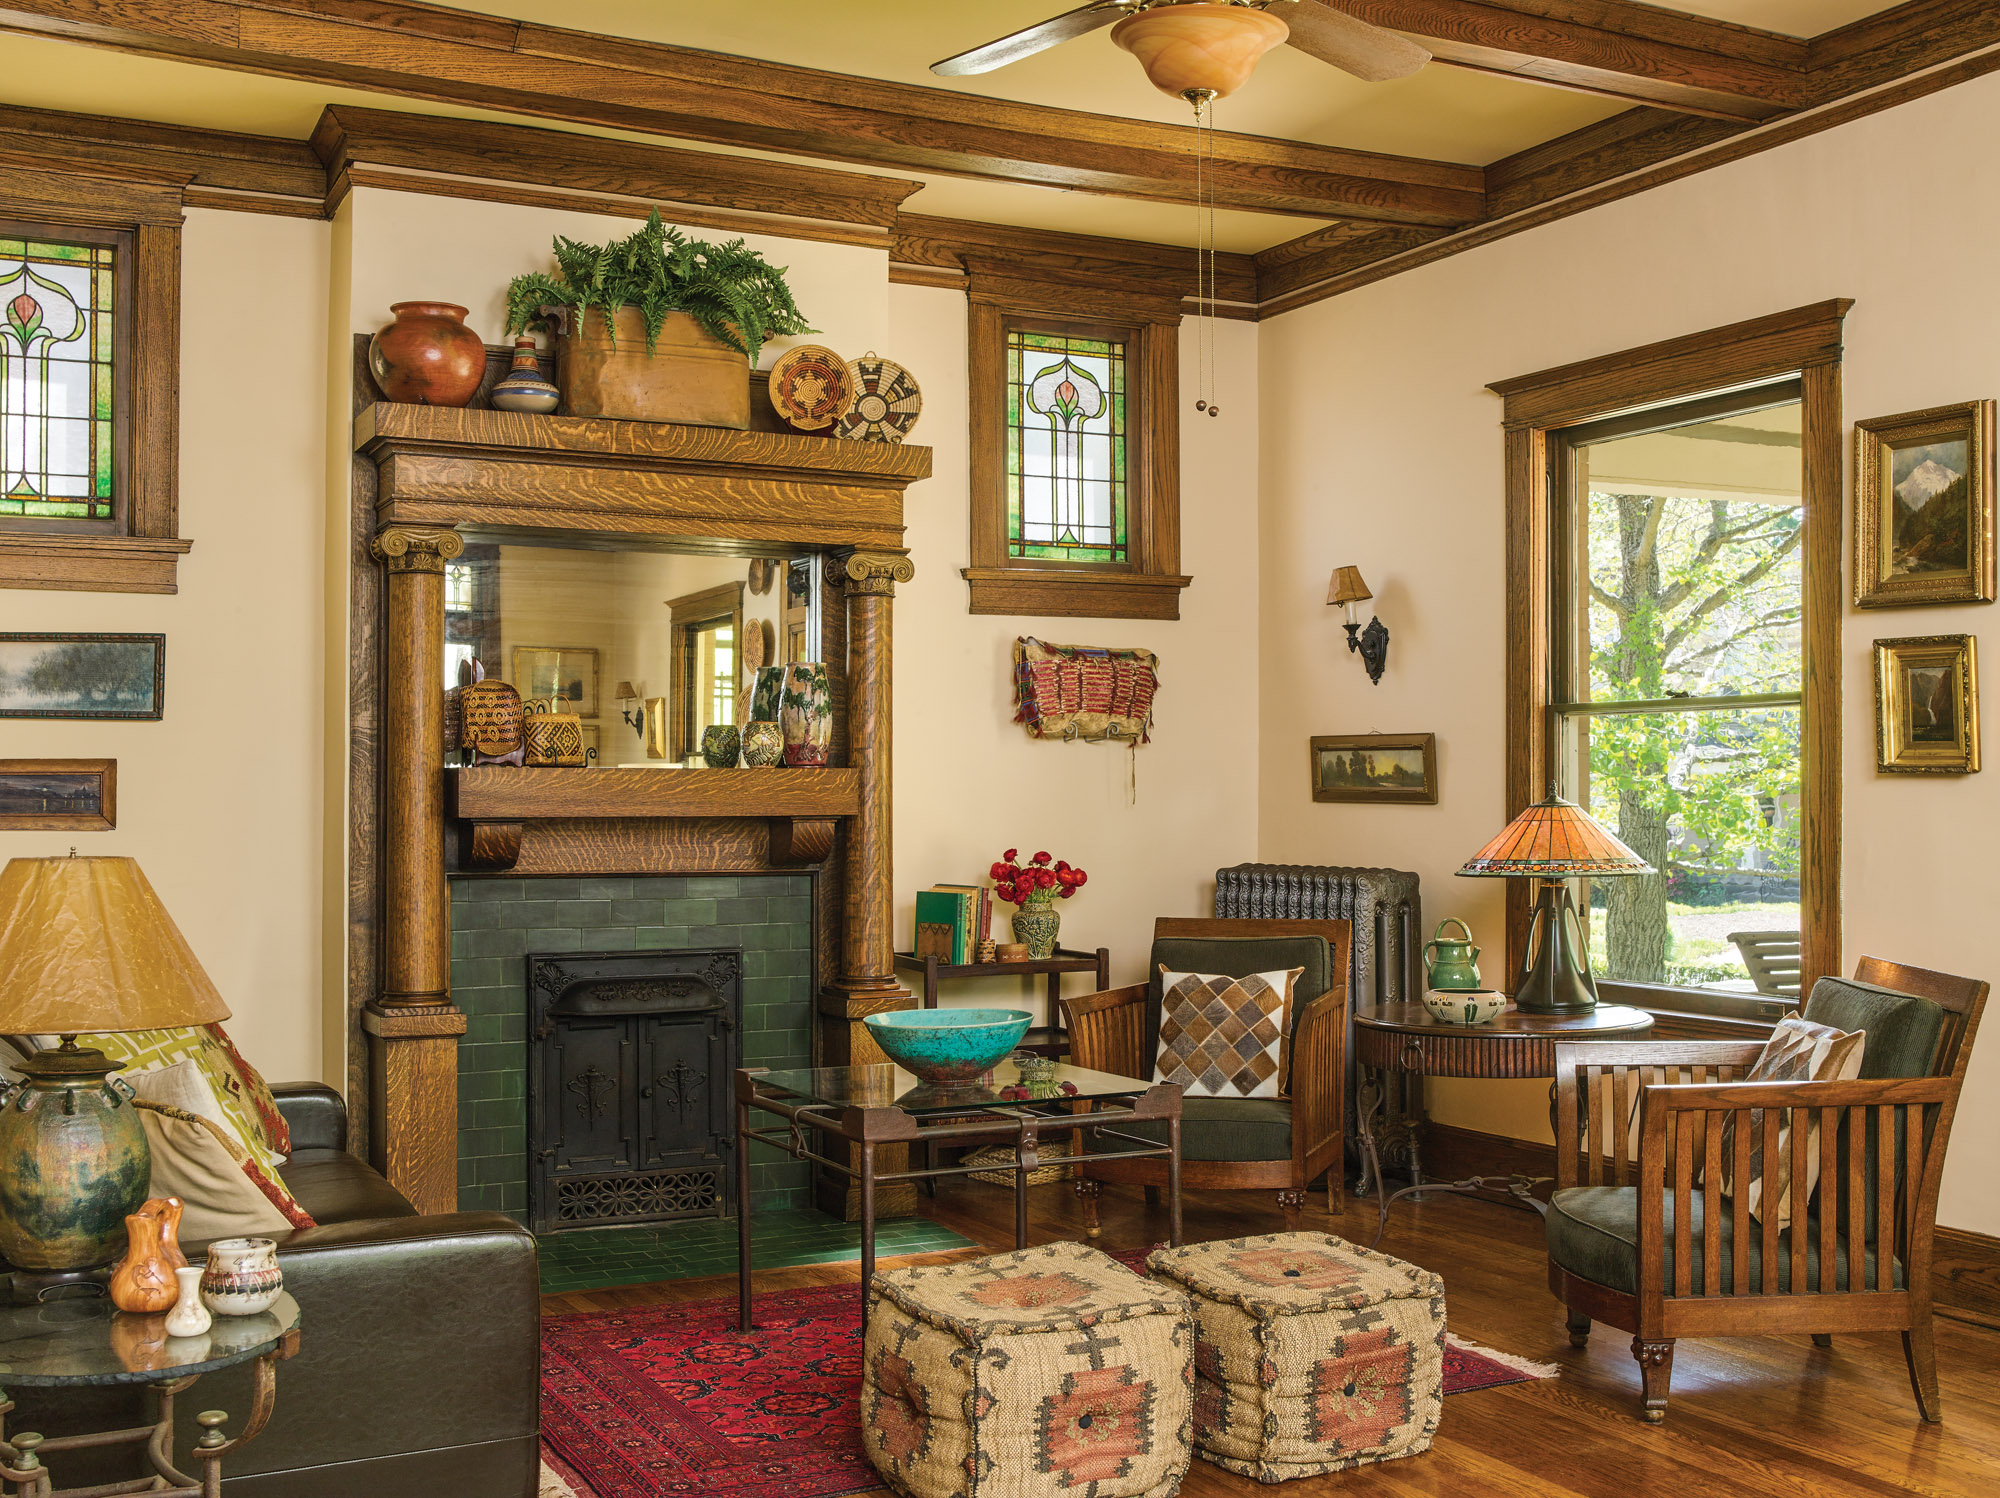 Prairie style American Foursquare living room